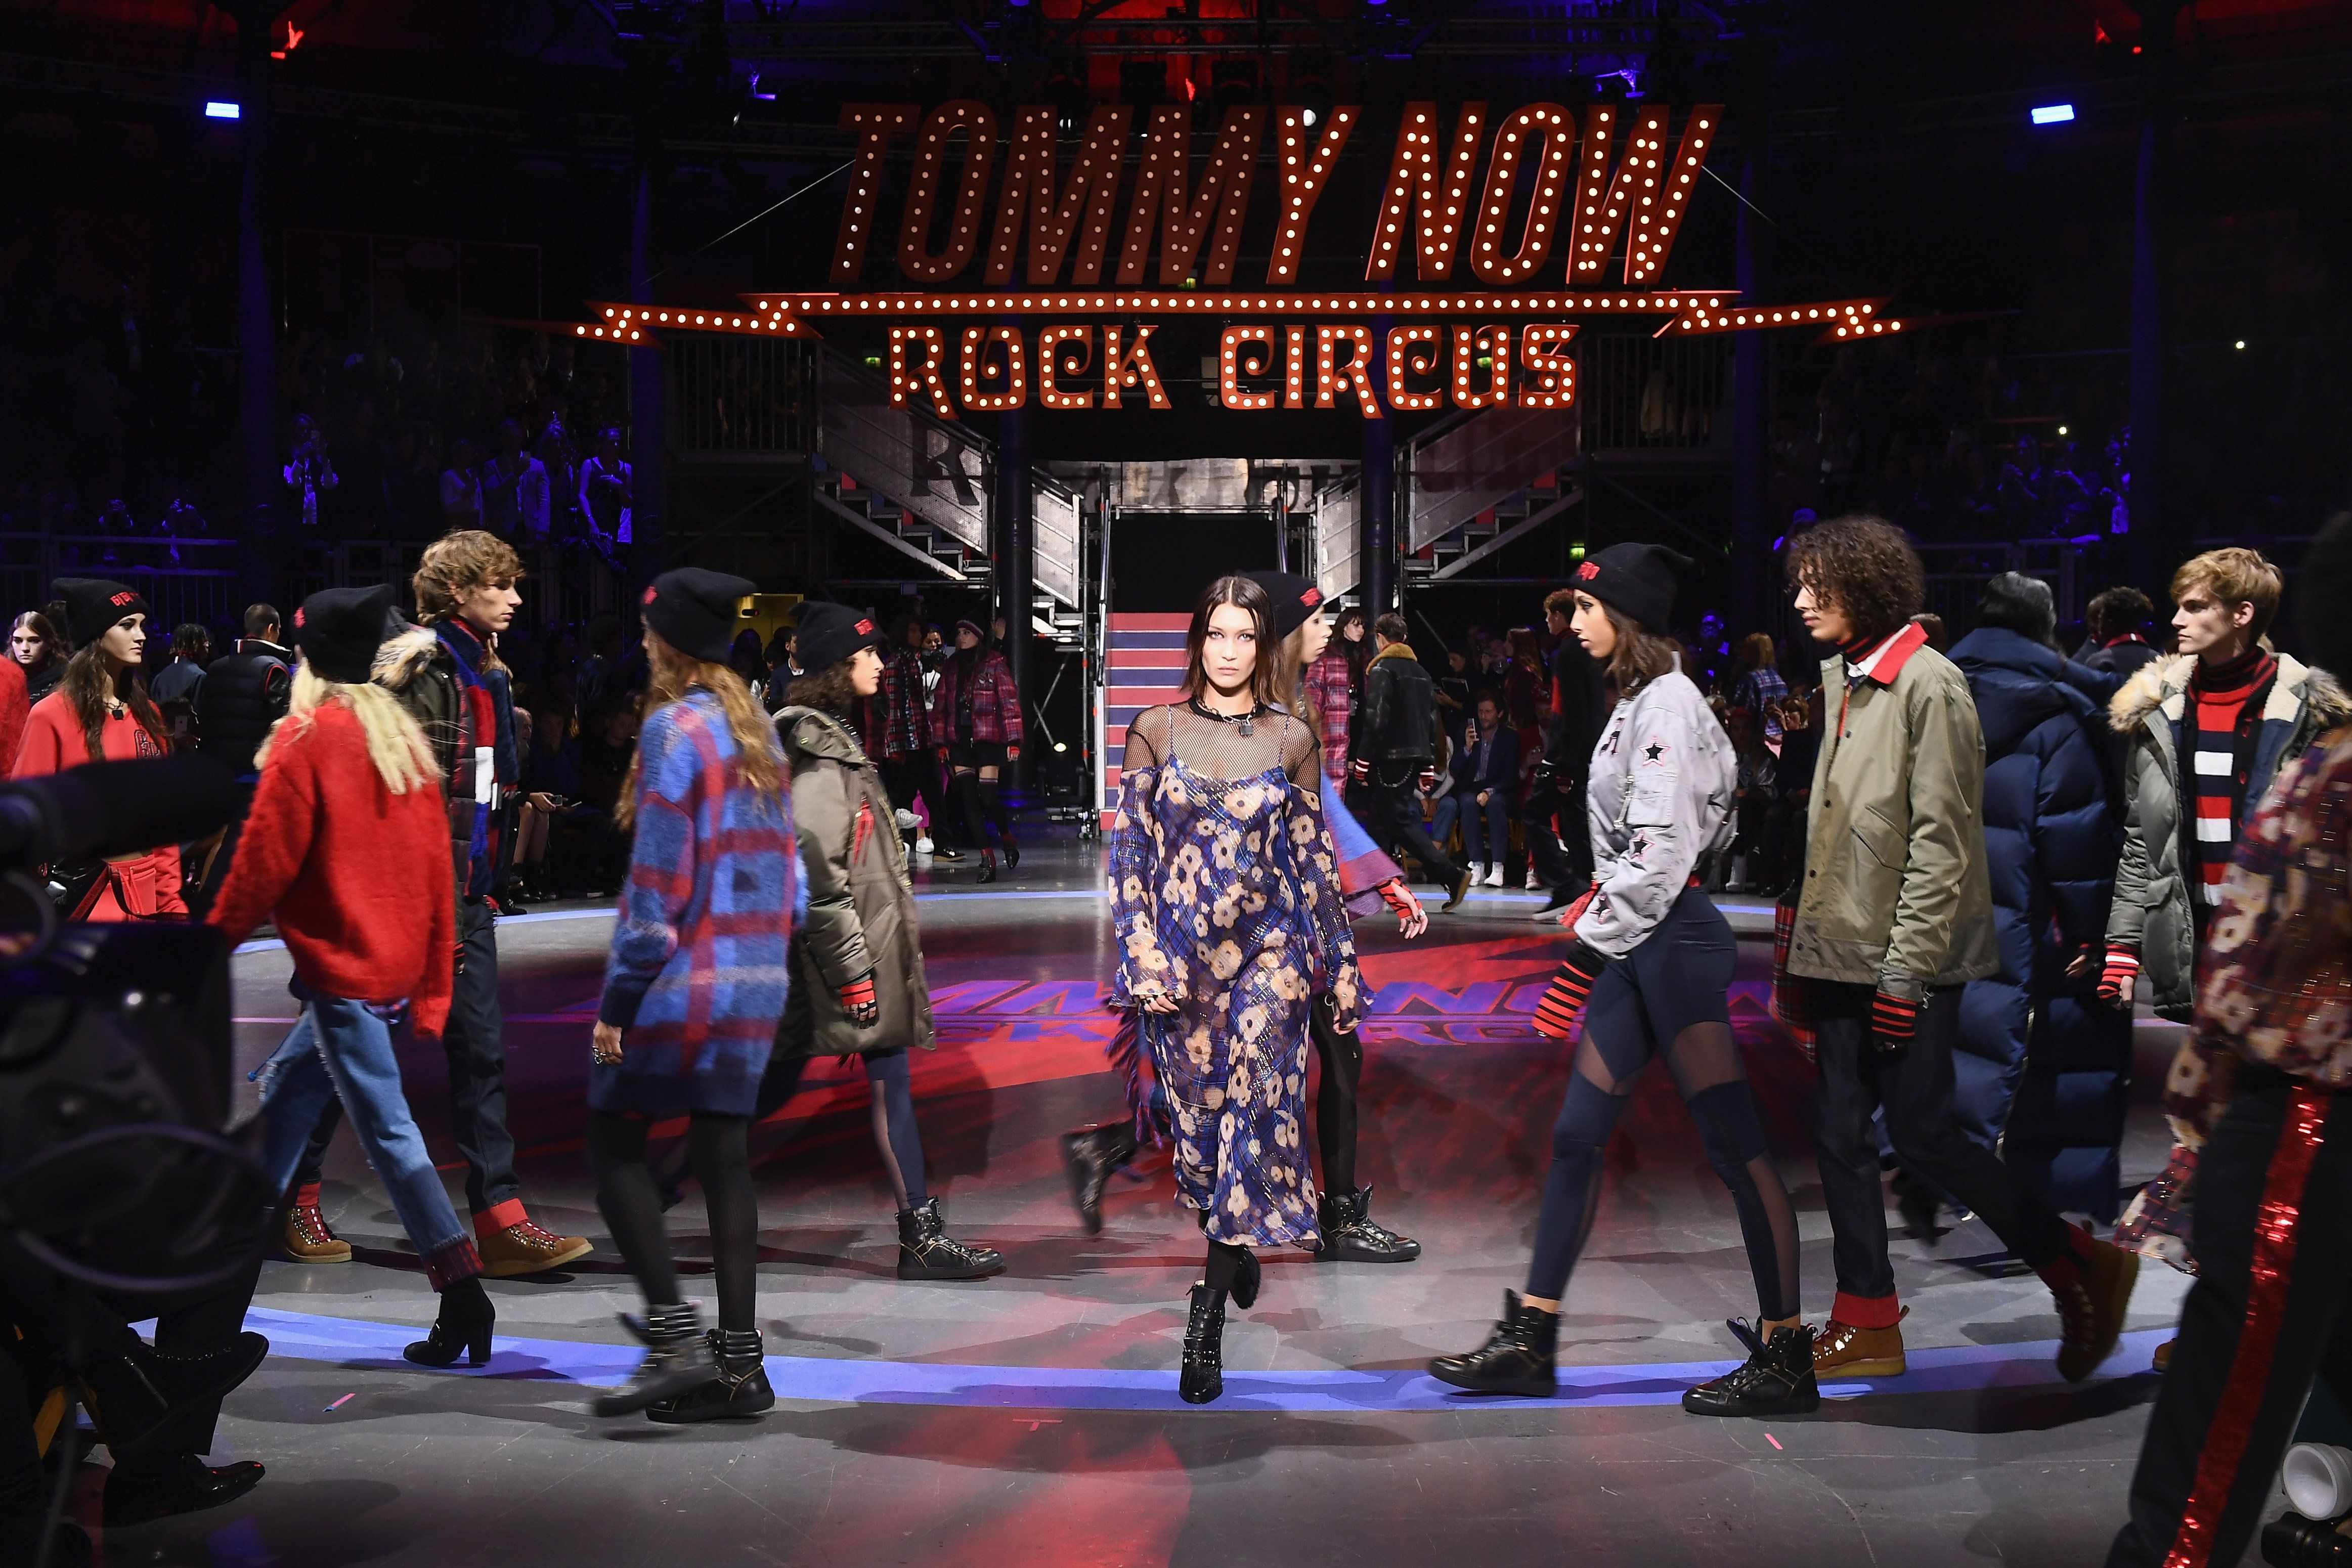 September's Fashion Week Shows Were The Most Diverse Yet, But Where's The Variety In